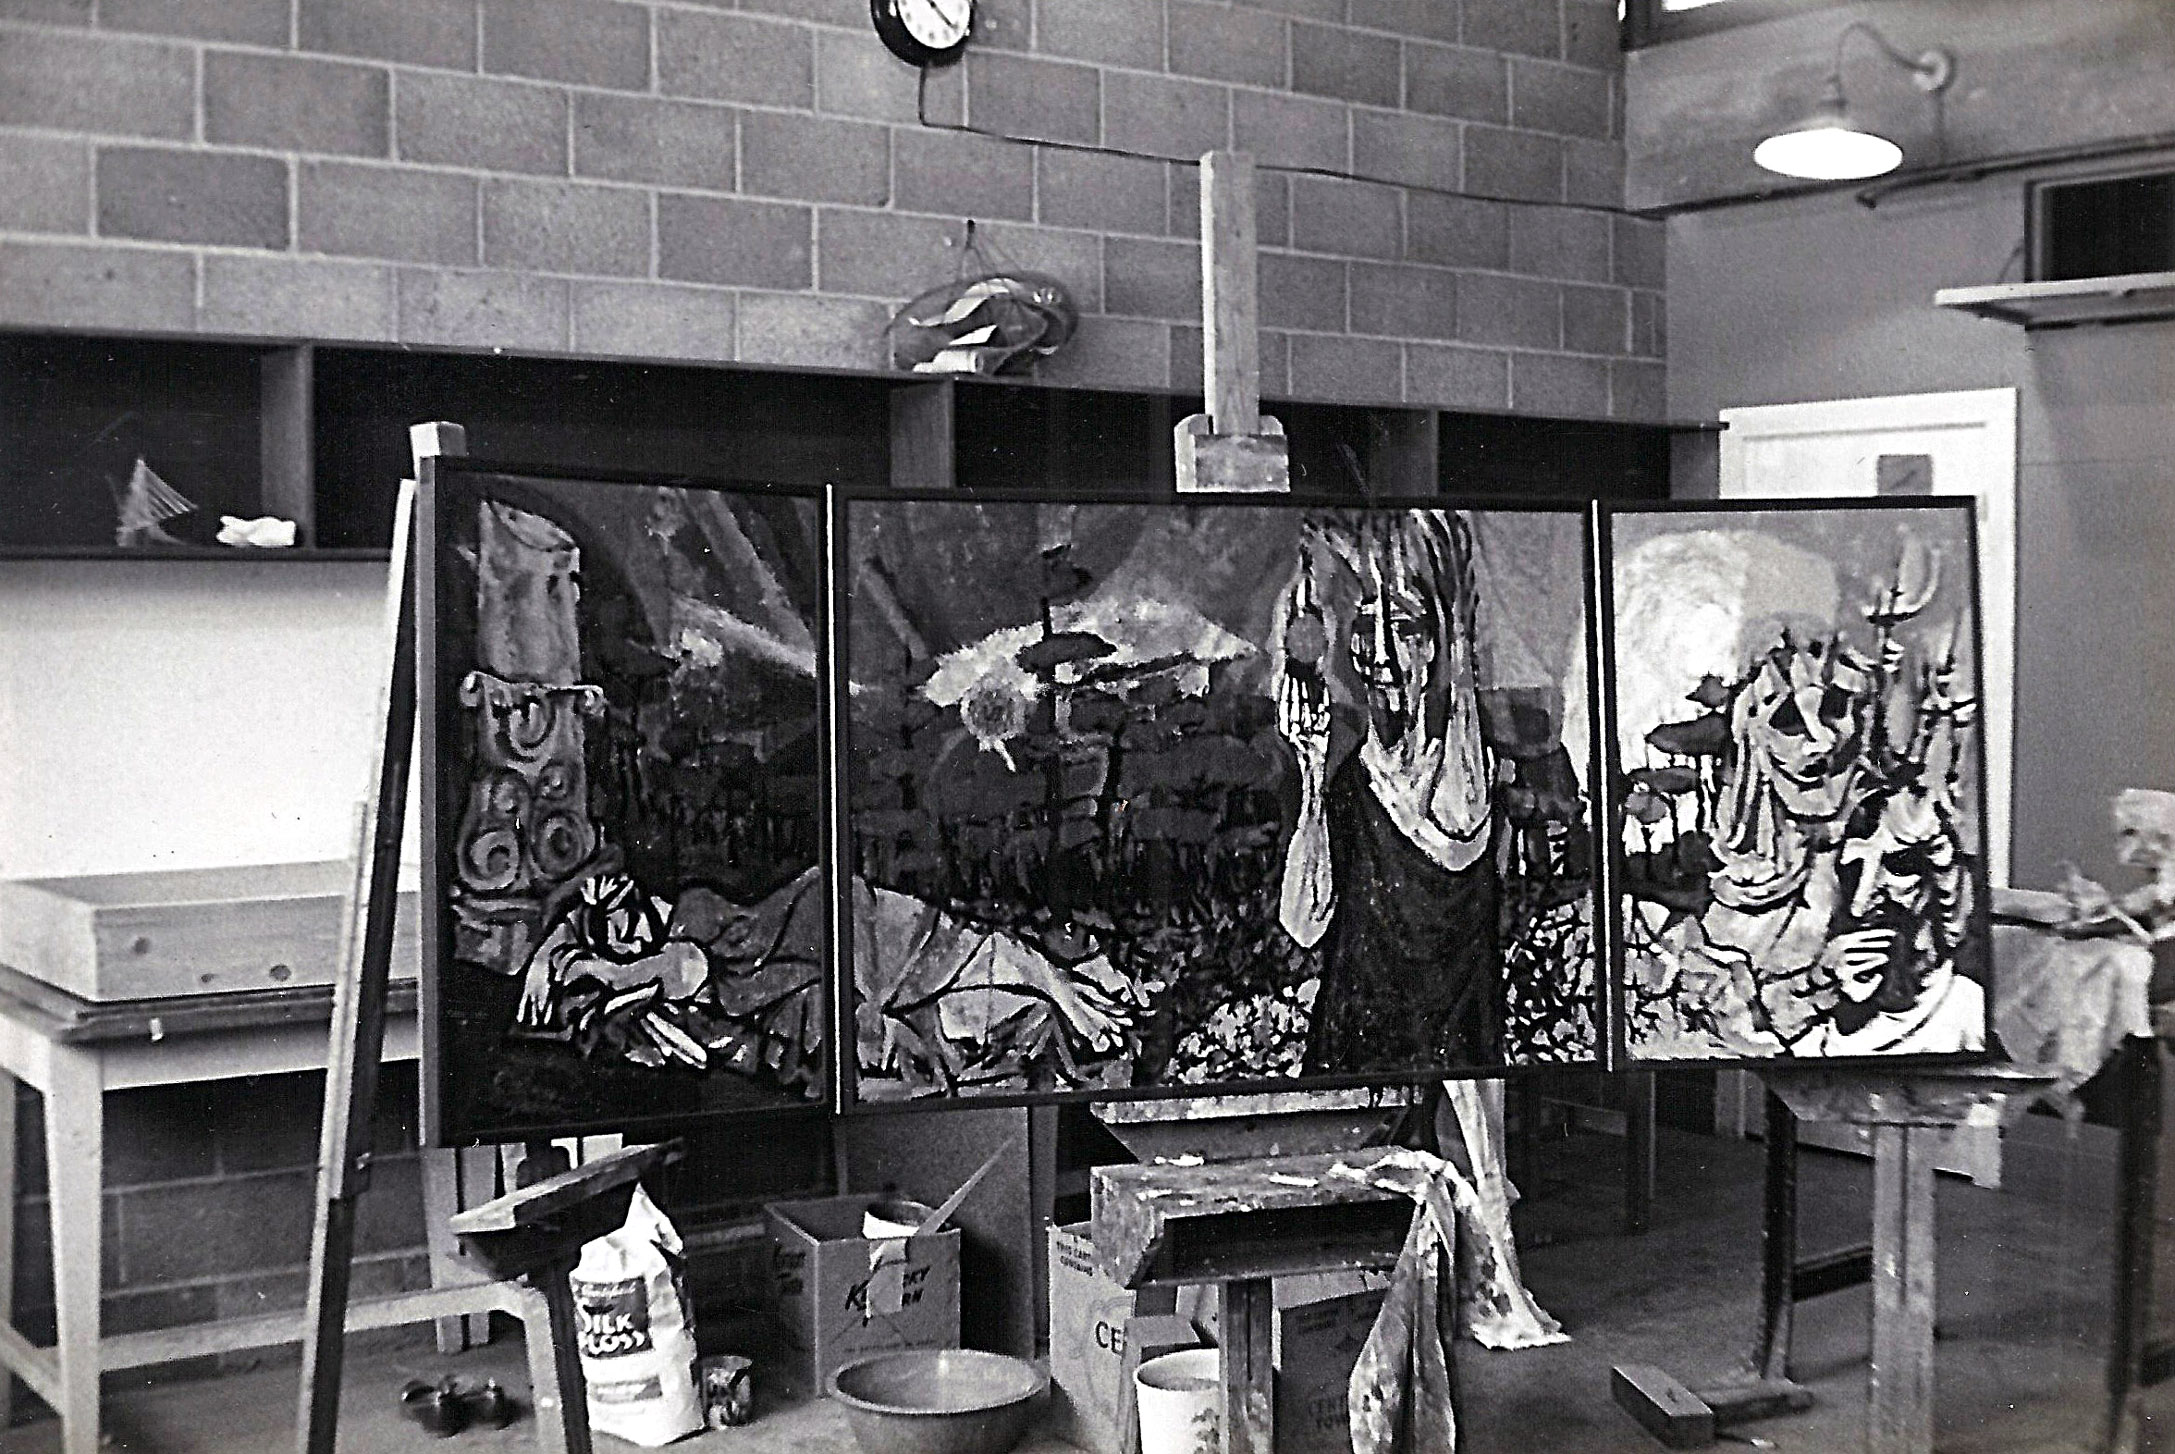 Painting in Kansas City, Yr - 1955